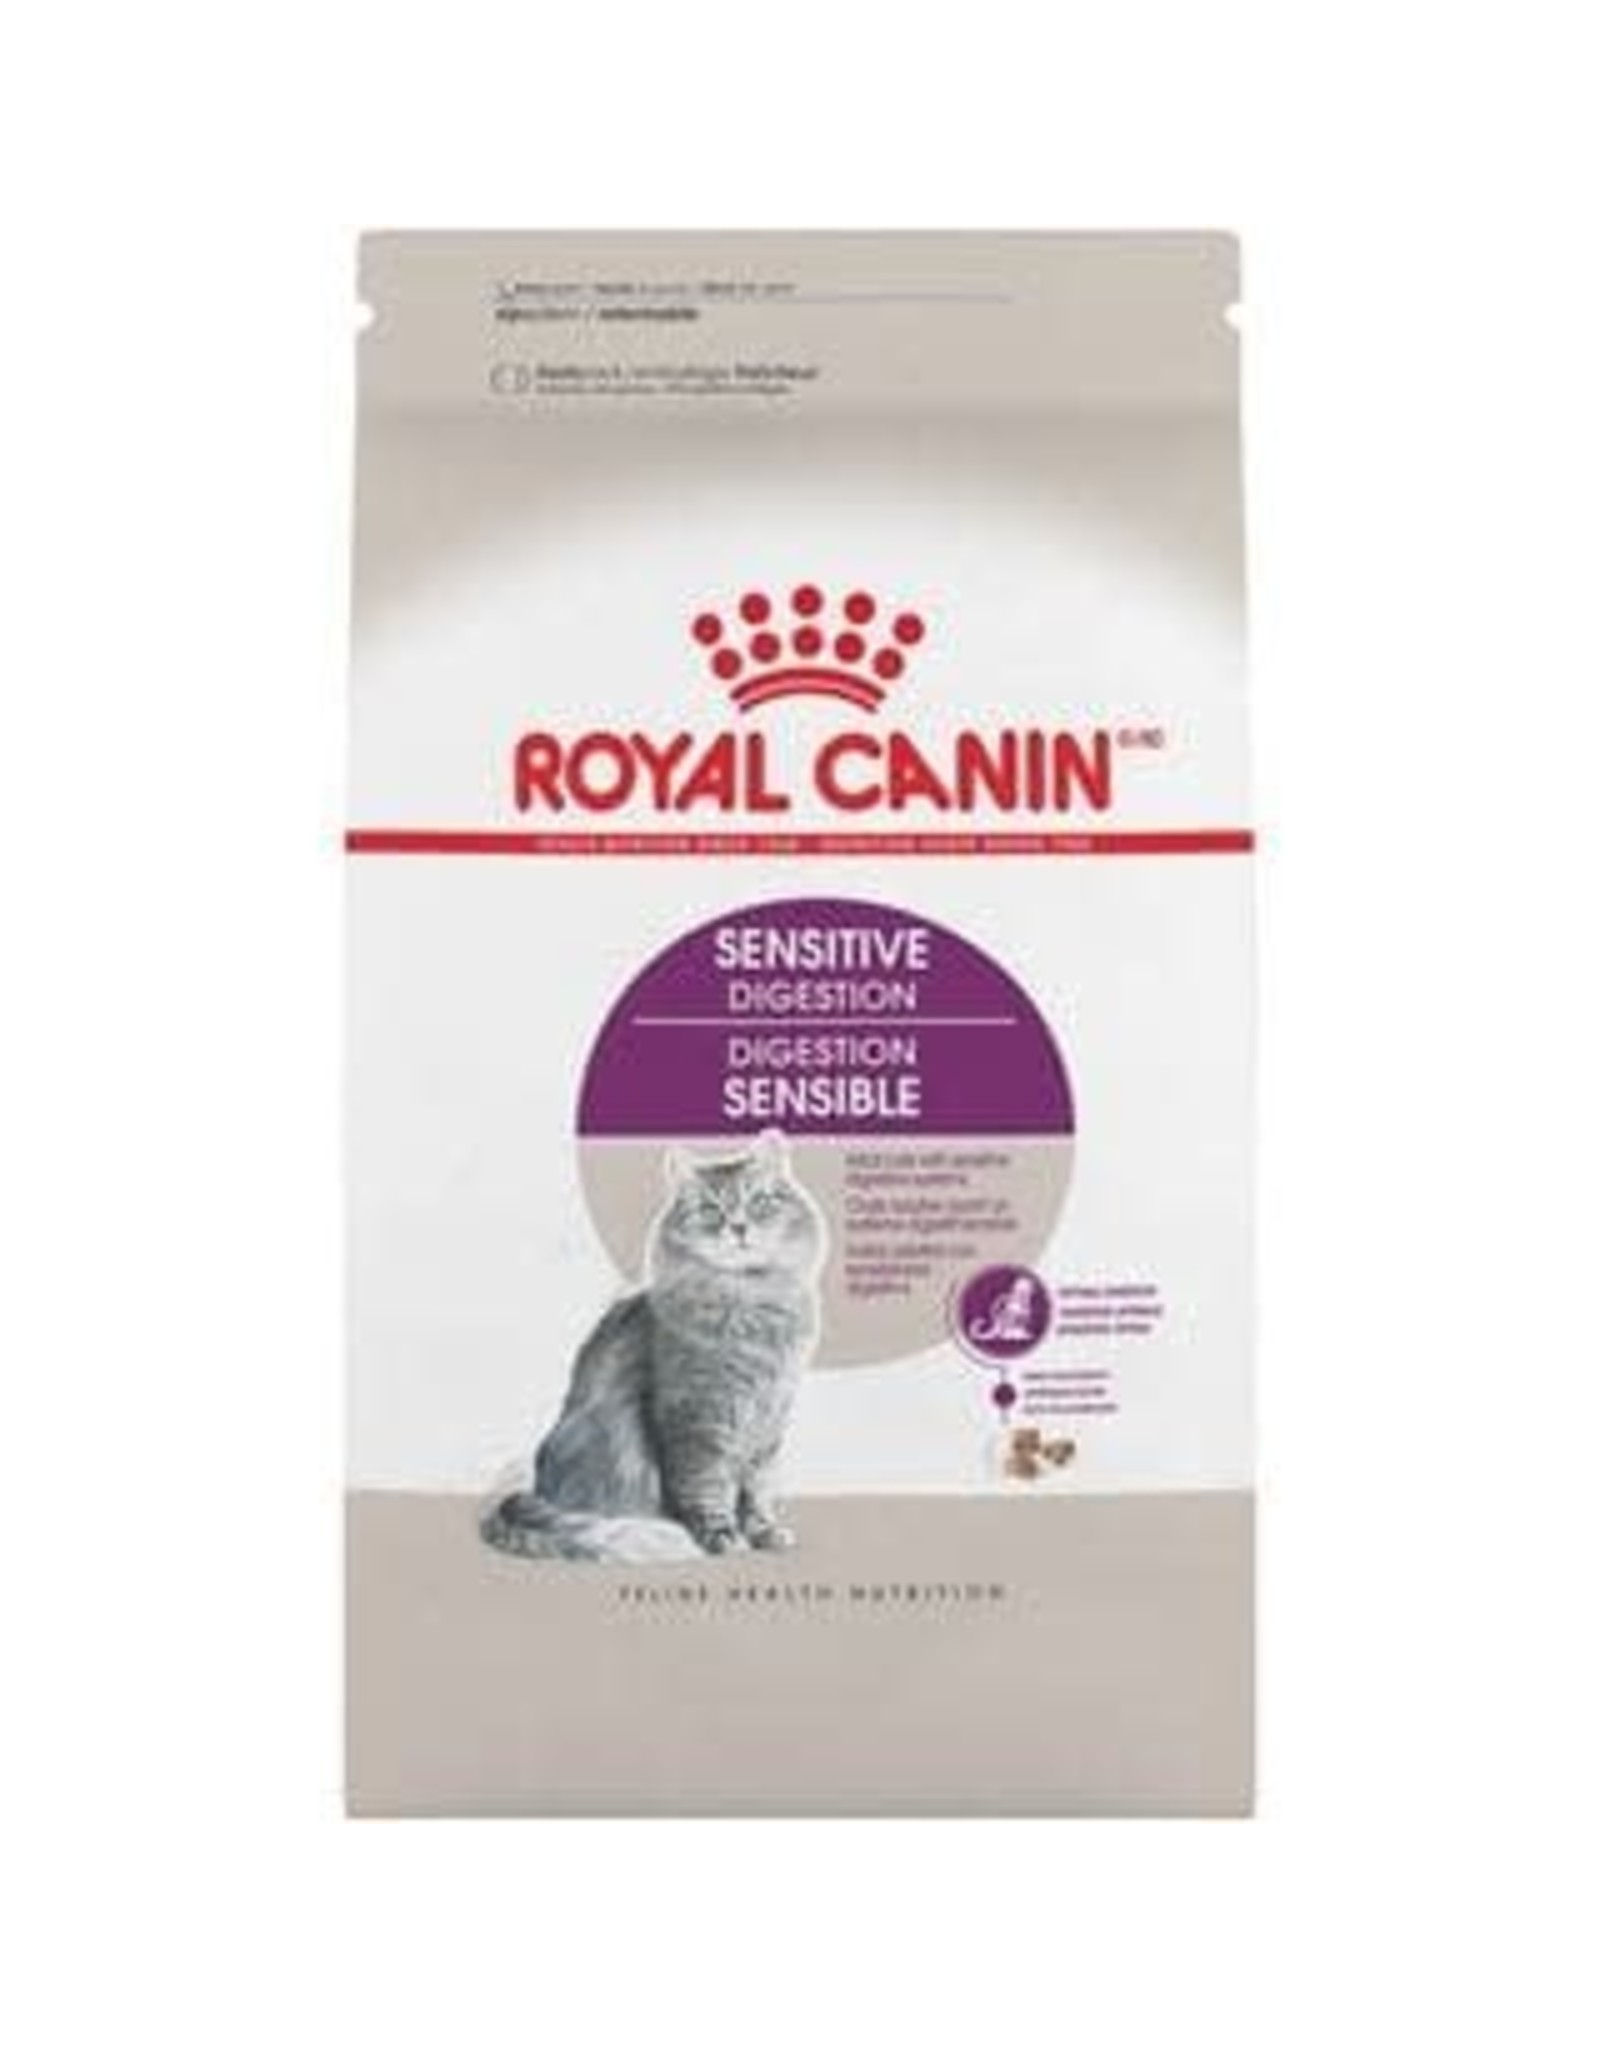 Royal Canin Royal Canin Cat - Sensitive Digestion